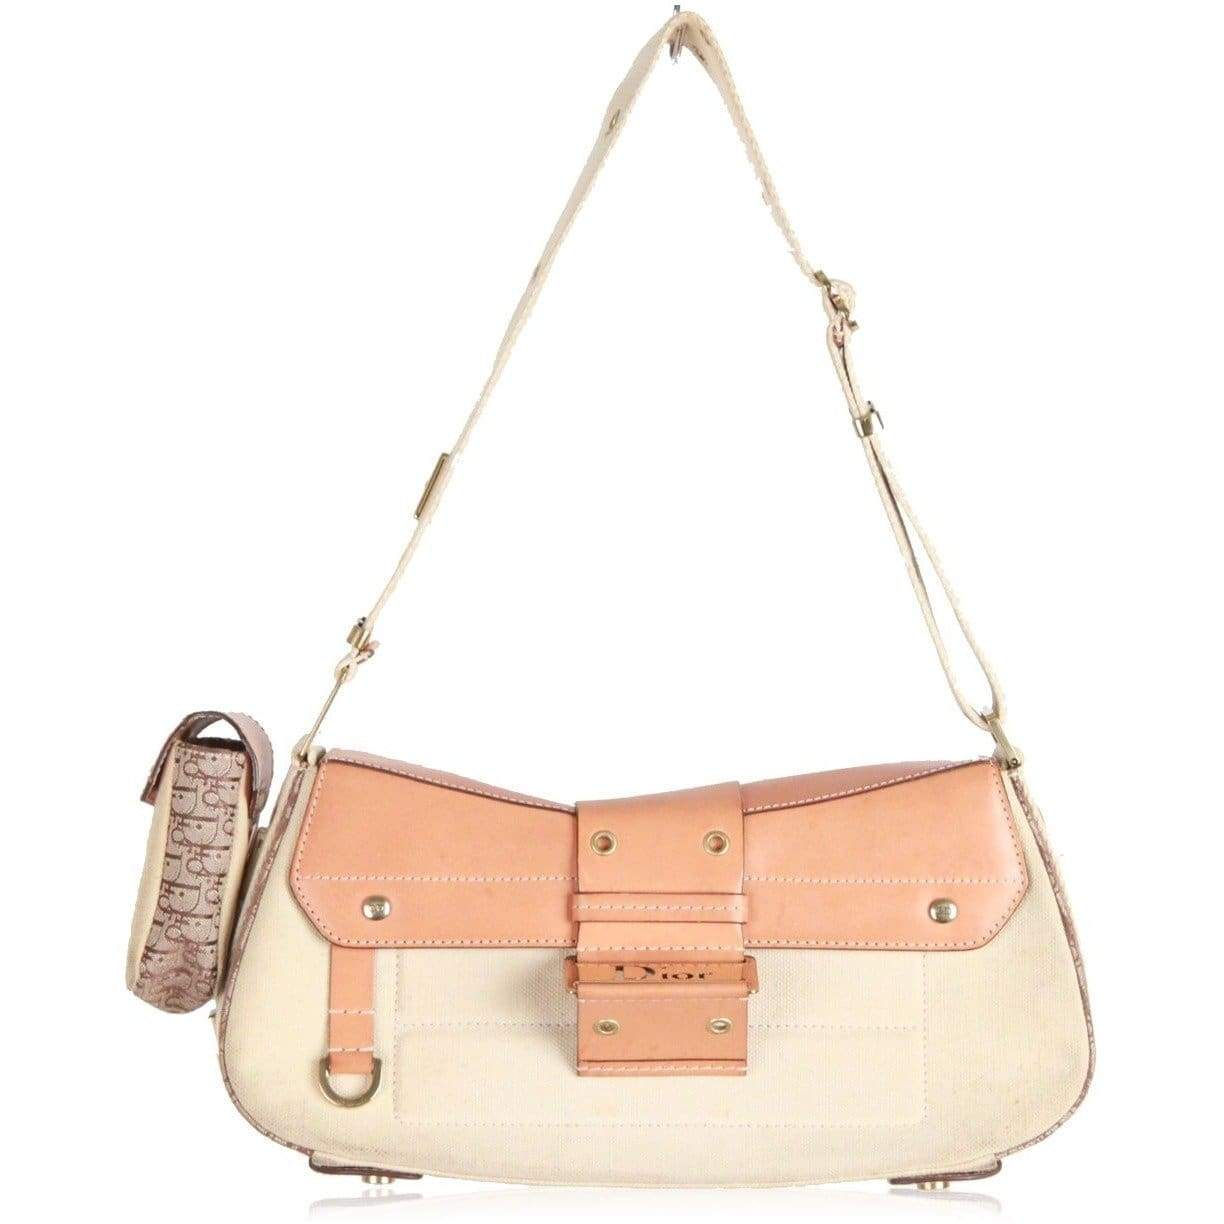 a8f72338a7b9 Christian Dior Beige Street Chic Columbus Ave Shoulder Bag With Belt  Opherty   Ciocci